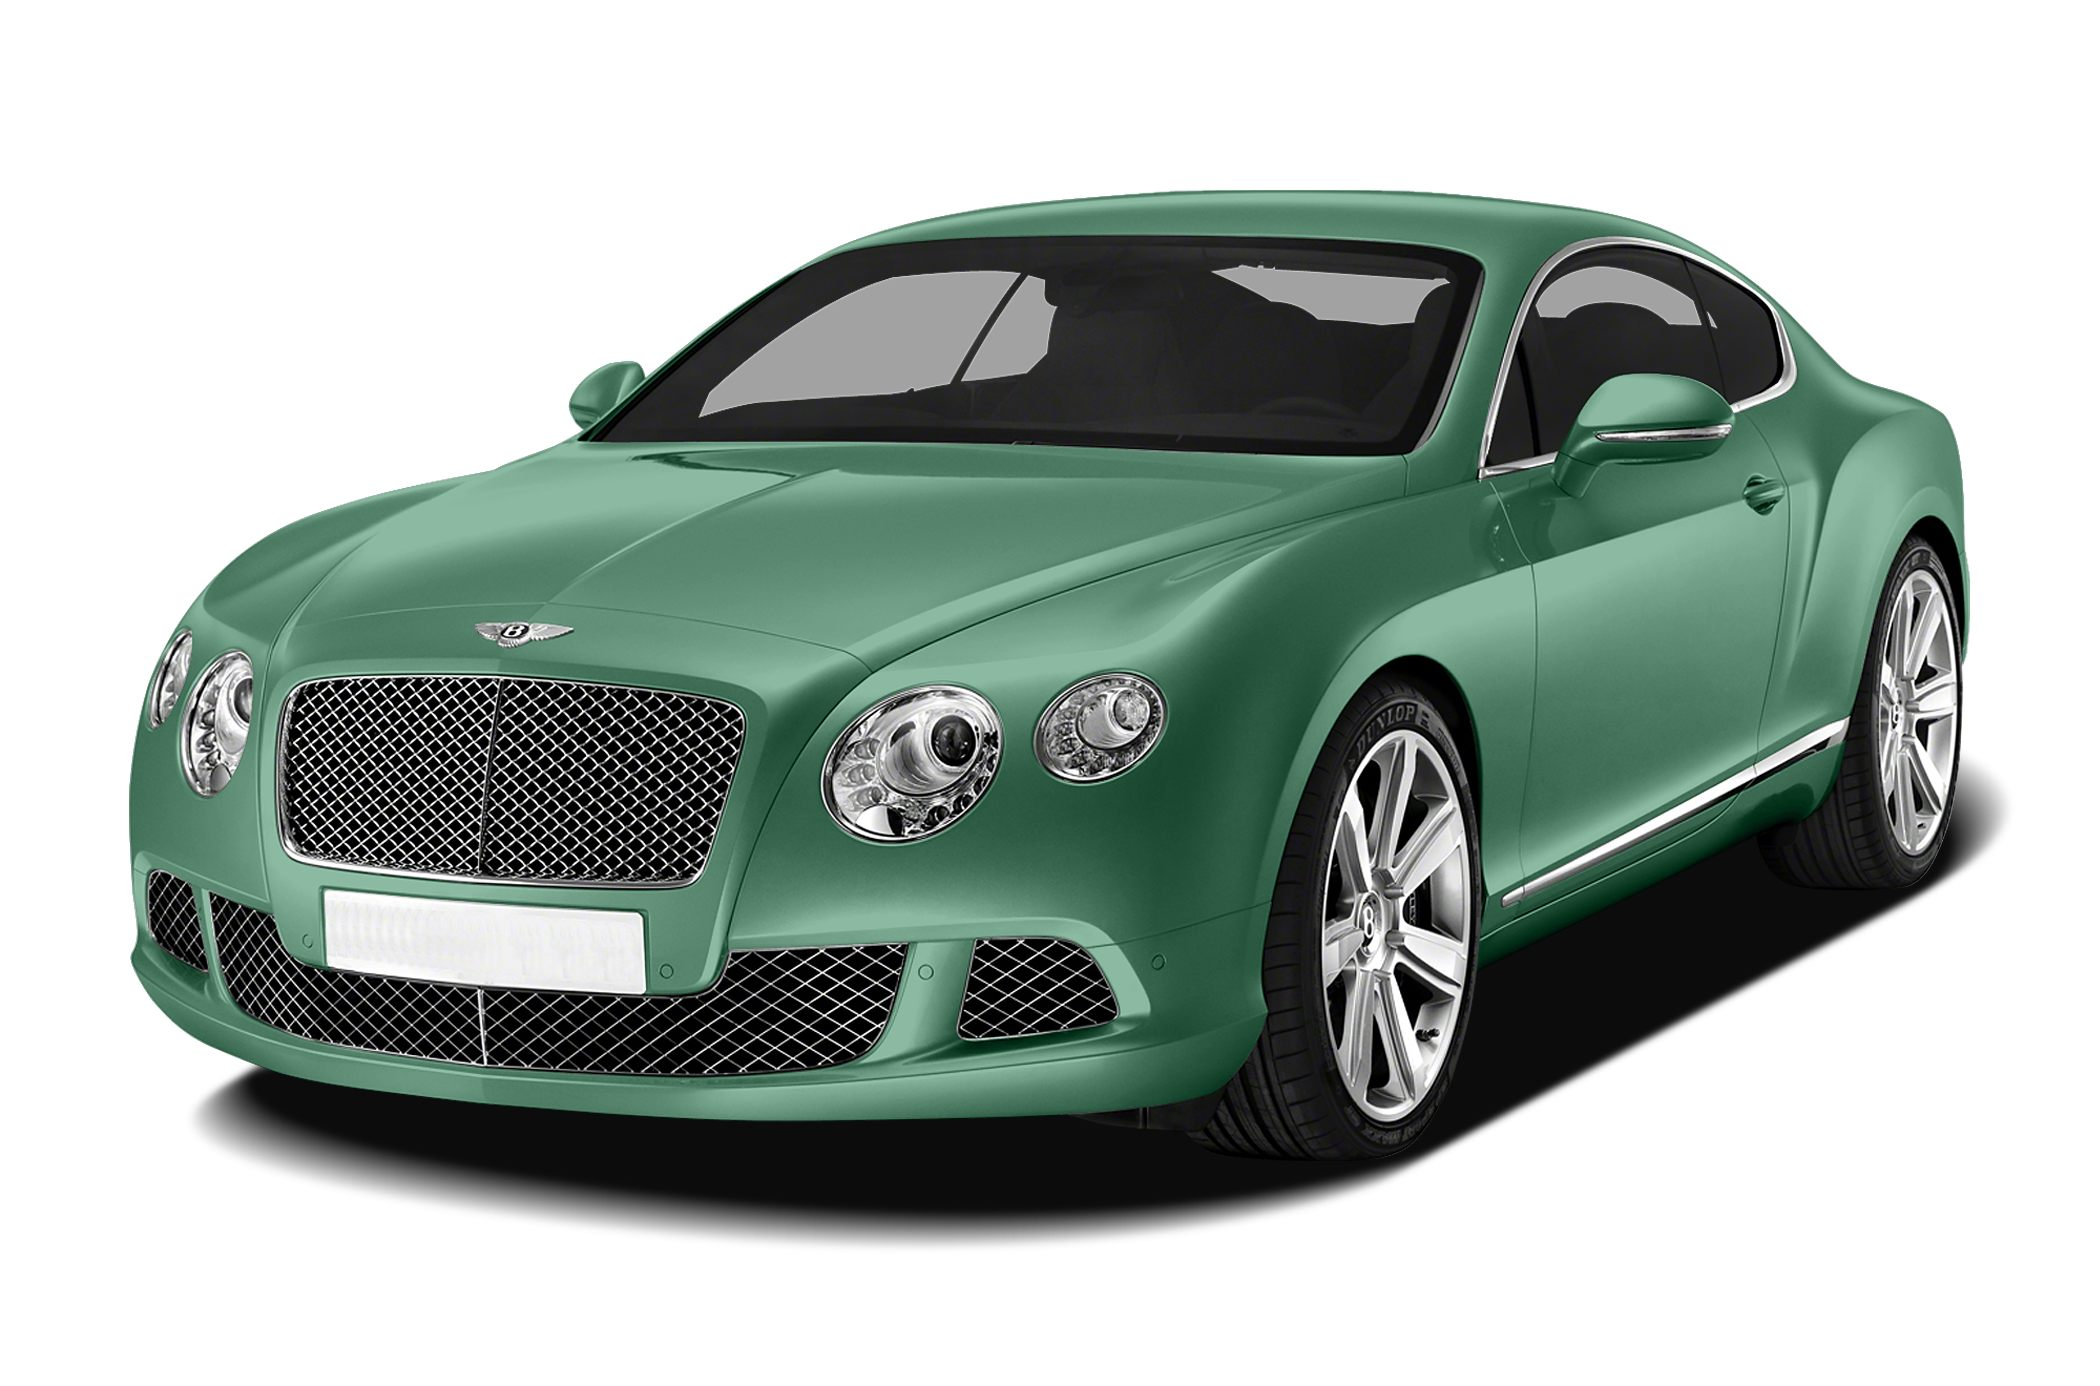 2012 Bentley Continental GT Base Coupe for sale in Fort Lauderdale for $147,980 with 17,244 miles.